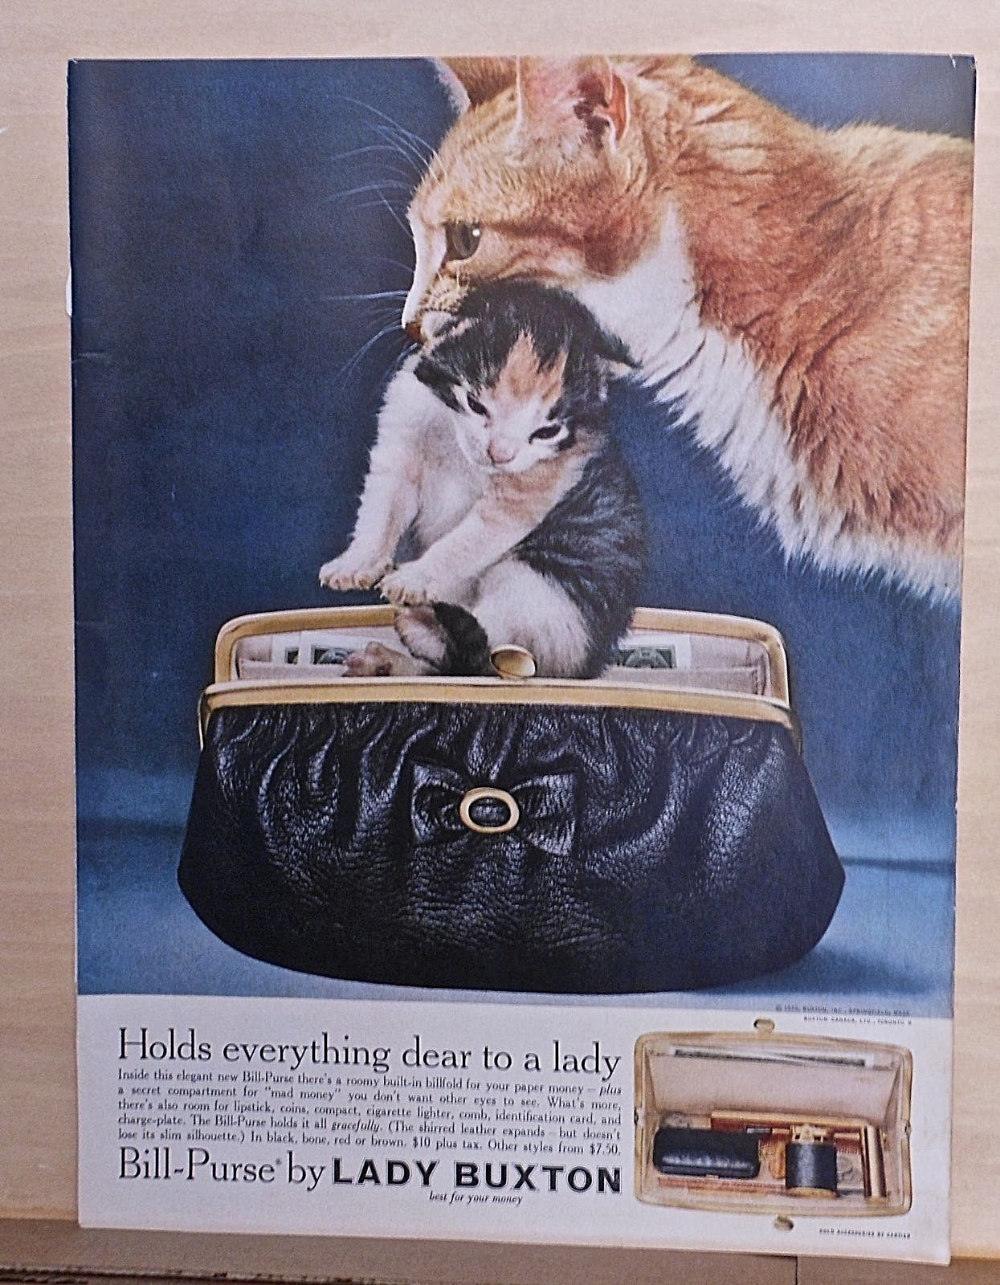 Pin By Falin Perth On Cats Vintage Cat Kitten Food Animals